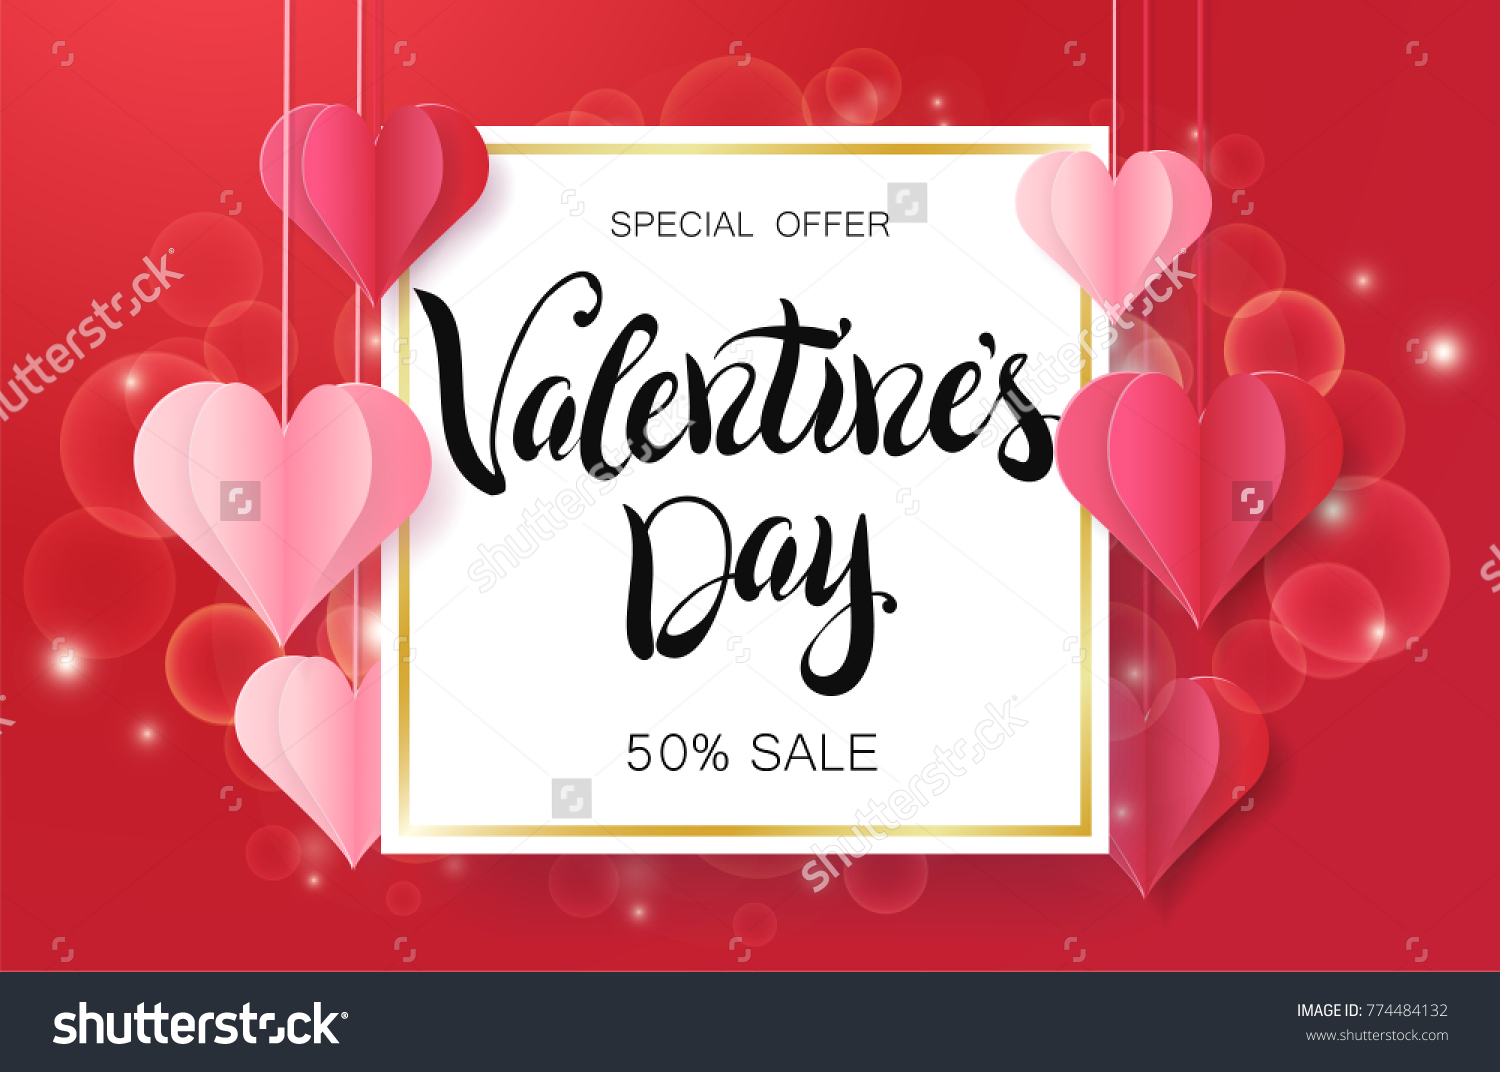 Happy valentines day design greeting card stock vector 774484132 happy valentines day design for greeting card can be used on banners or web kristyandbryce Choice Image